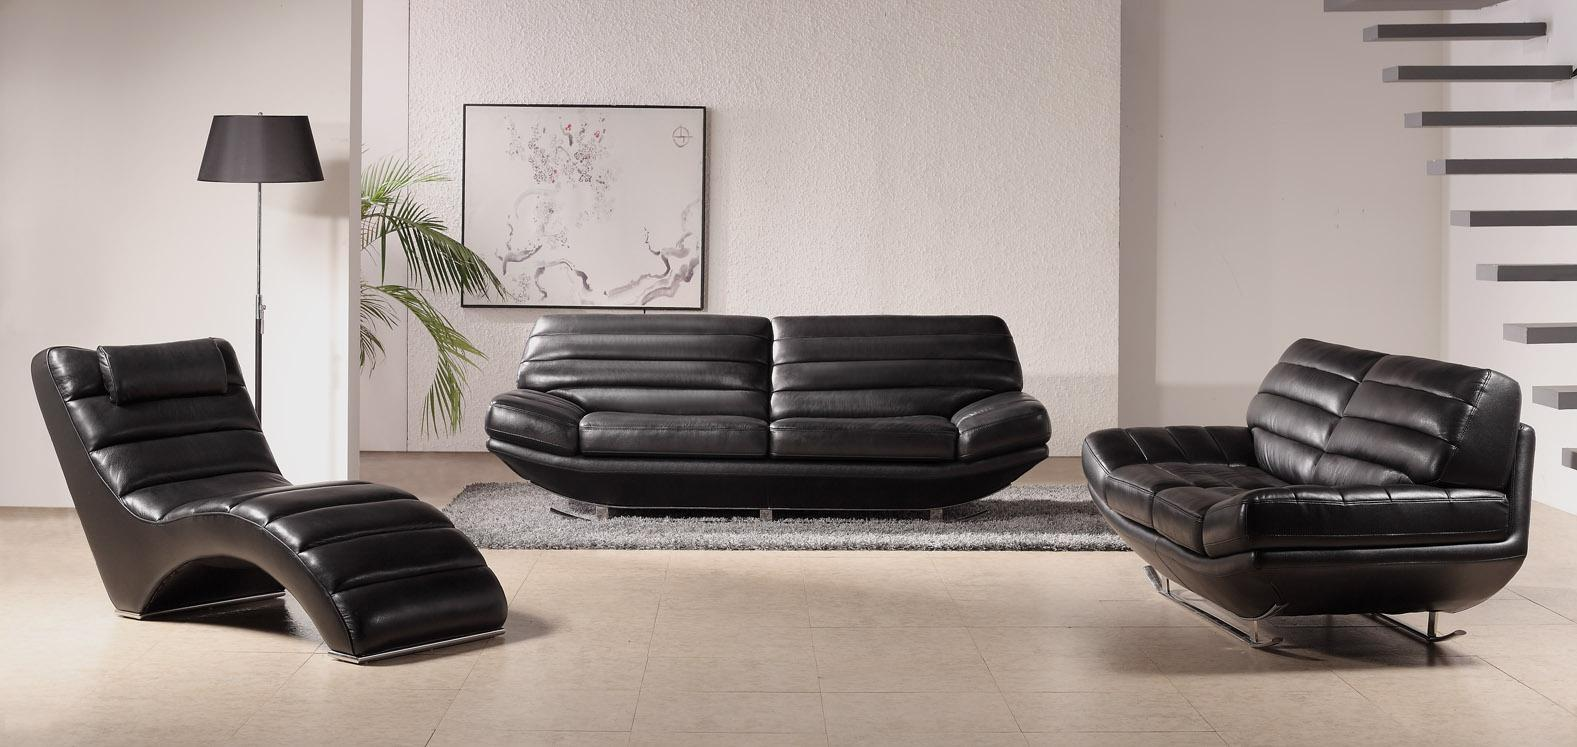 Sweet deluxe black leather sofa set for living room